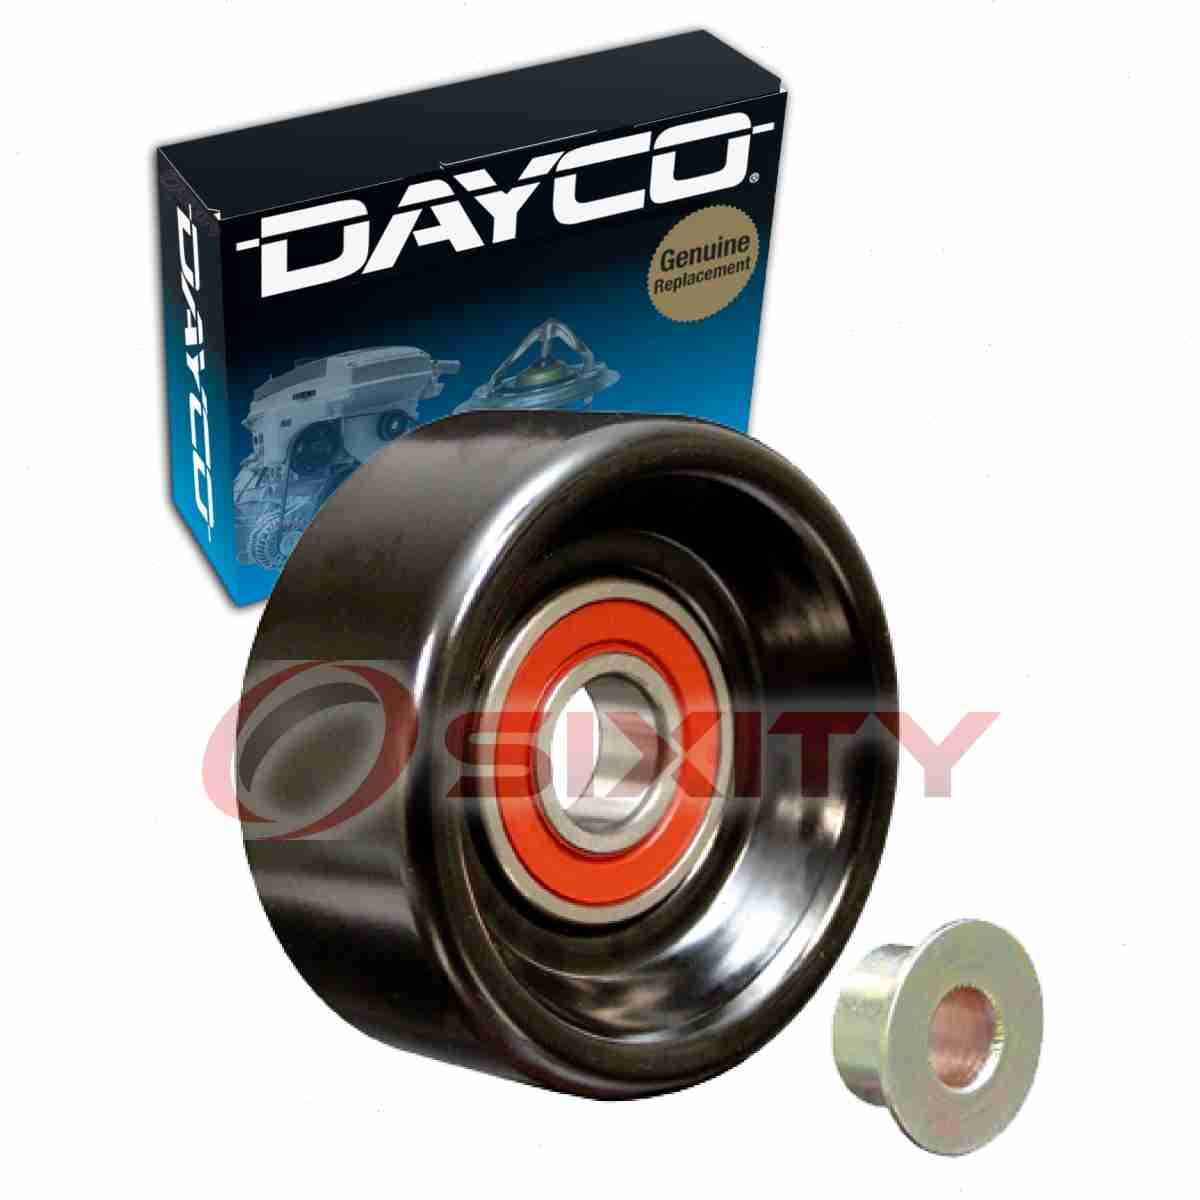 details about dayco drive belt idler pulley for 2001-2007 dodge grand  caravan 3 3l 3 8l v6 vk